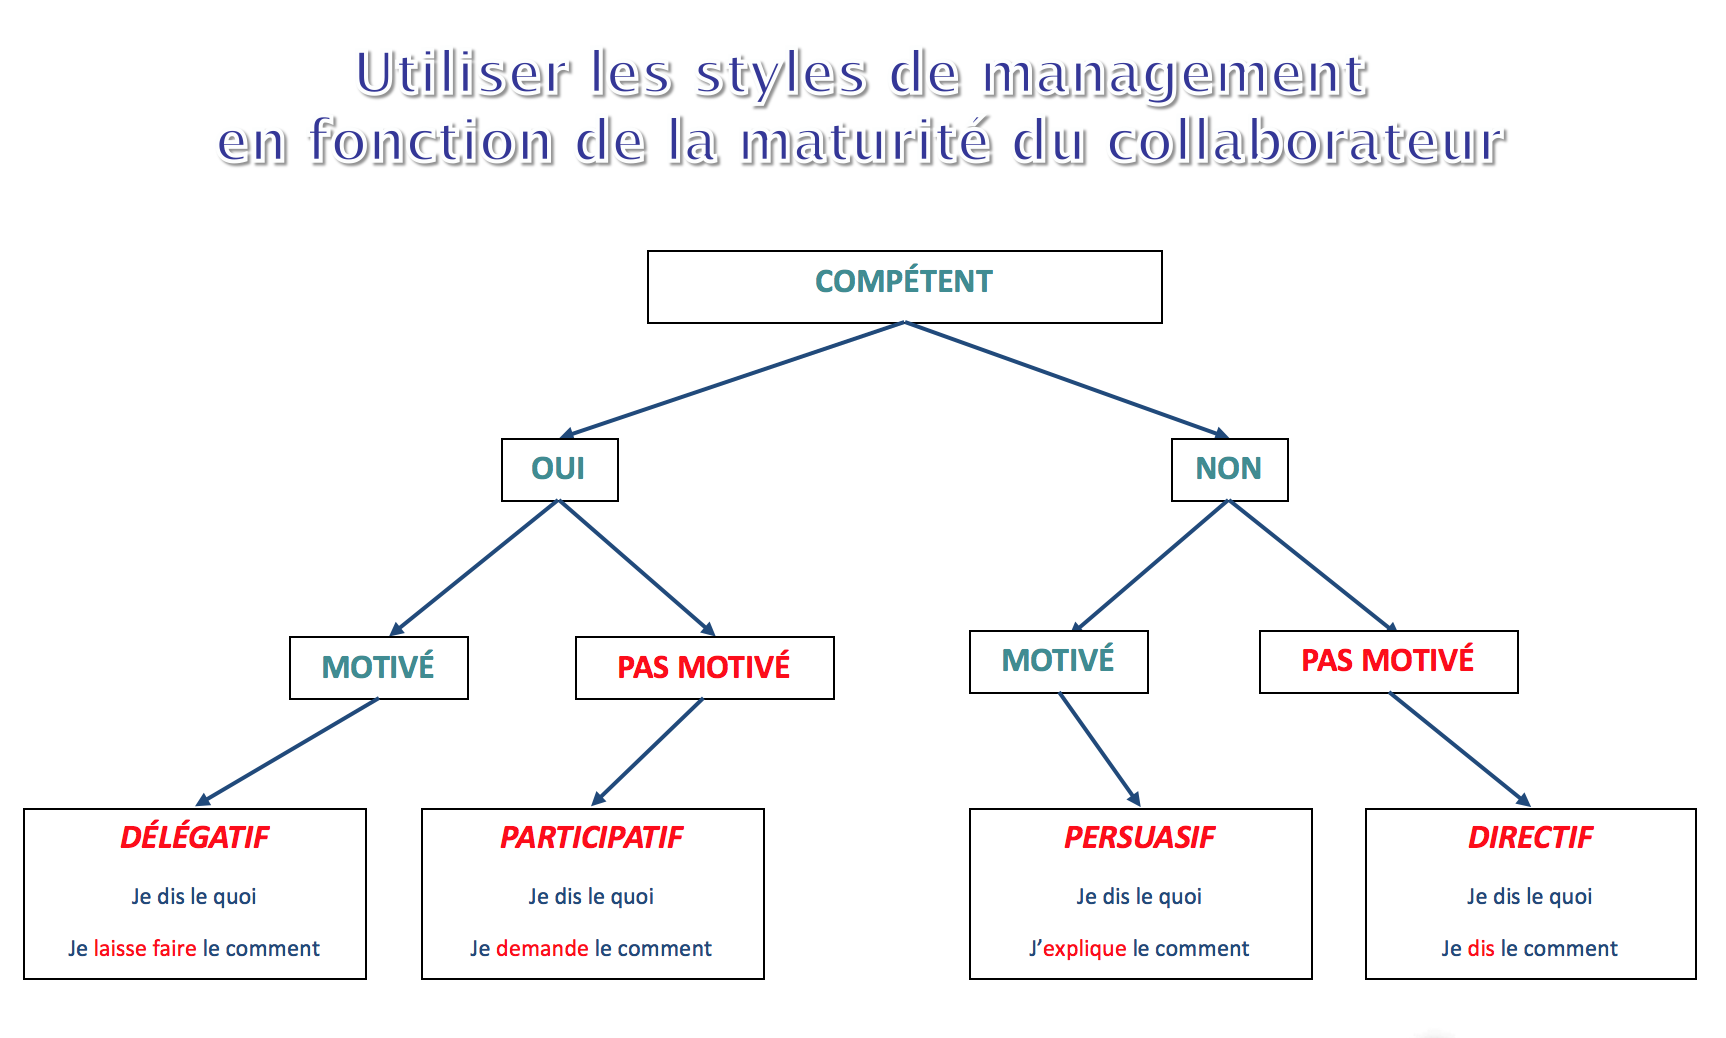 the different styles of management A good management style is never one-size-fits-all, and that's why different management styles must be explored in turn so you can select the approach that fits you: who you are, and the talents and abilities you bring to the table.